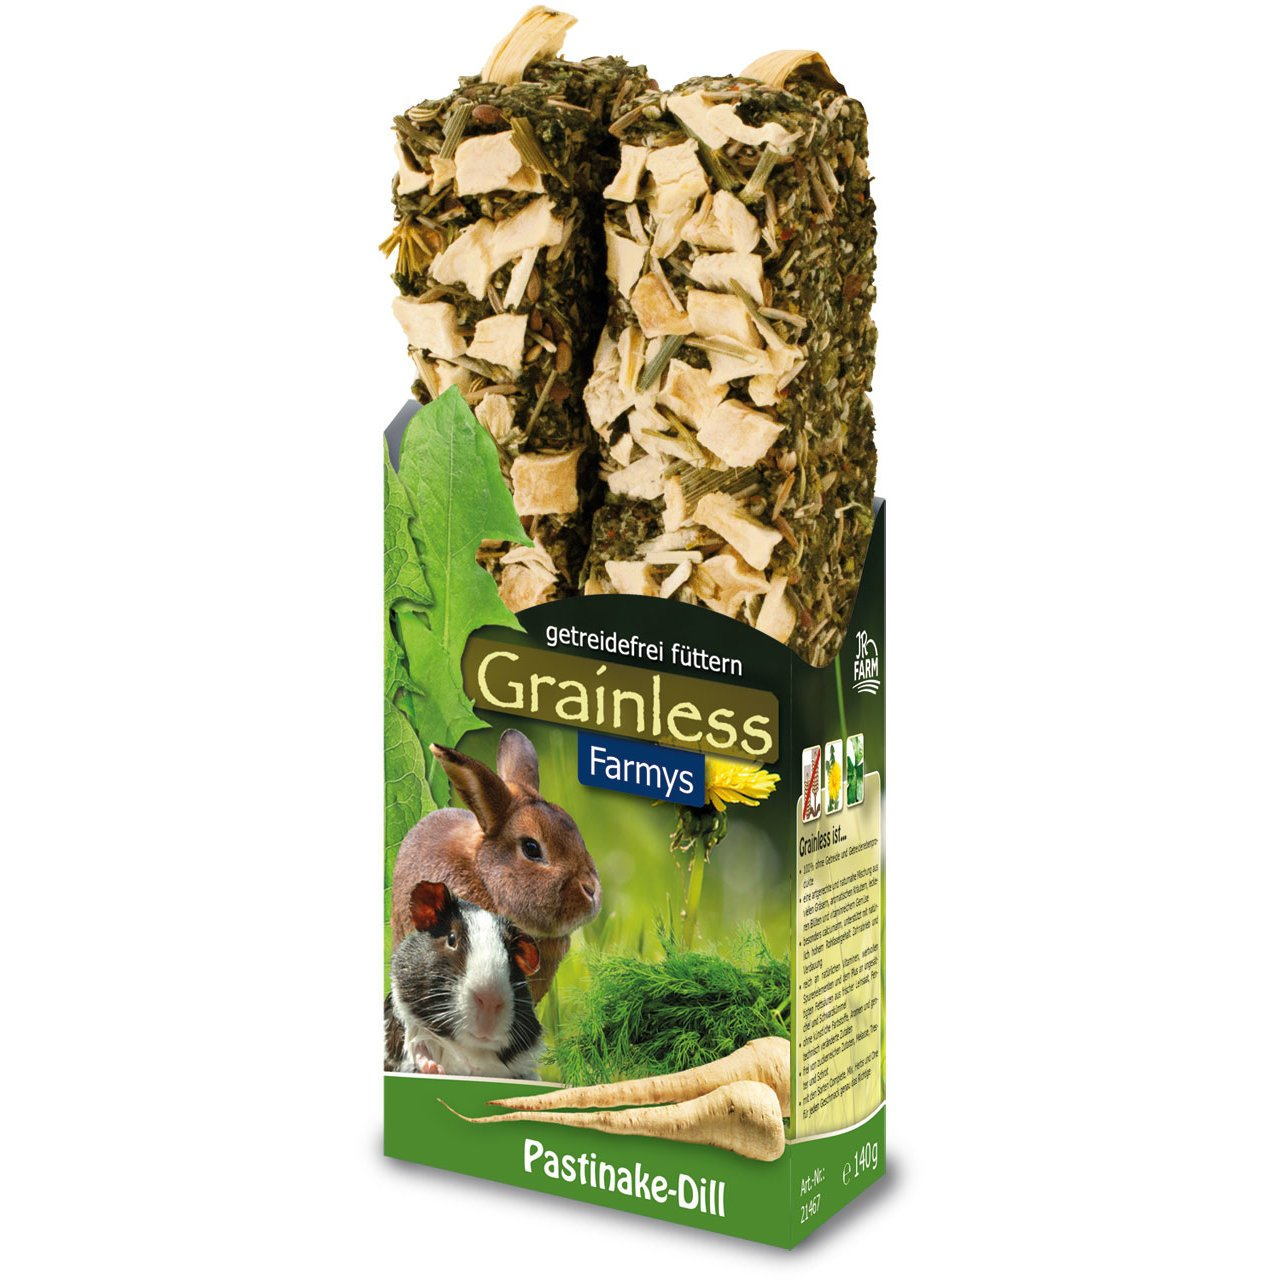 JR Farm Grainless Farmys Snack, Pastinake-Dill 140 g